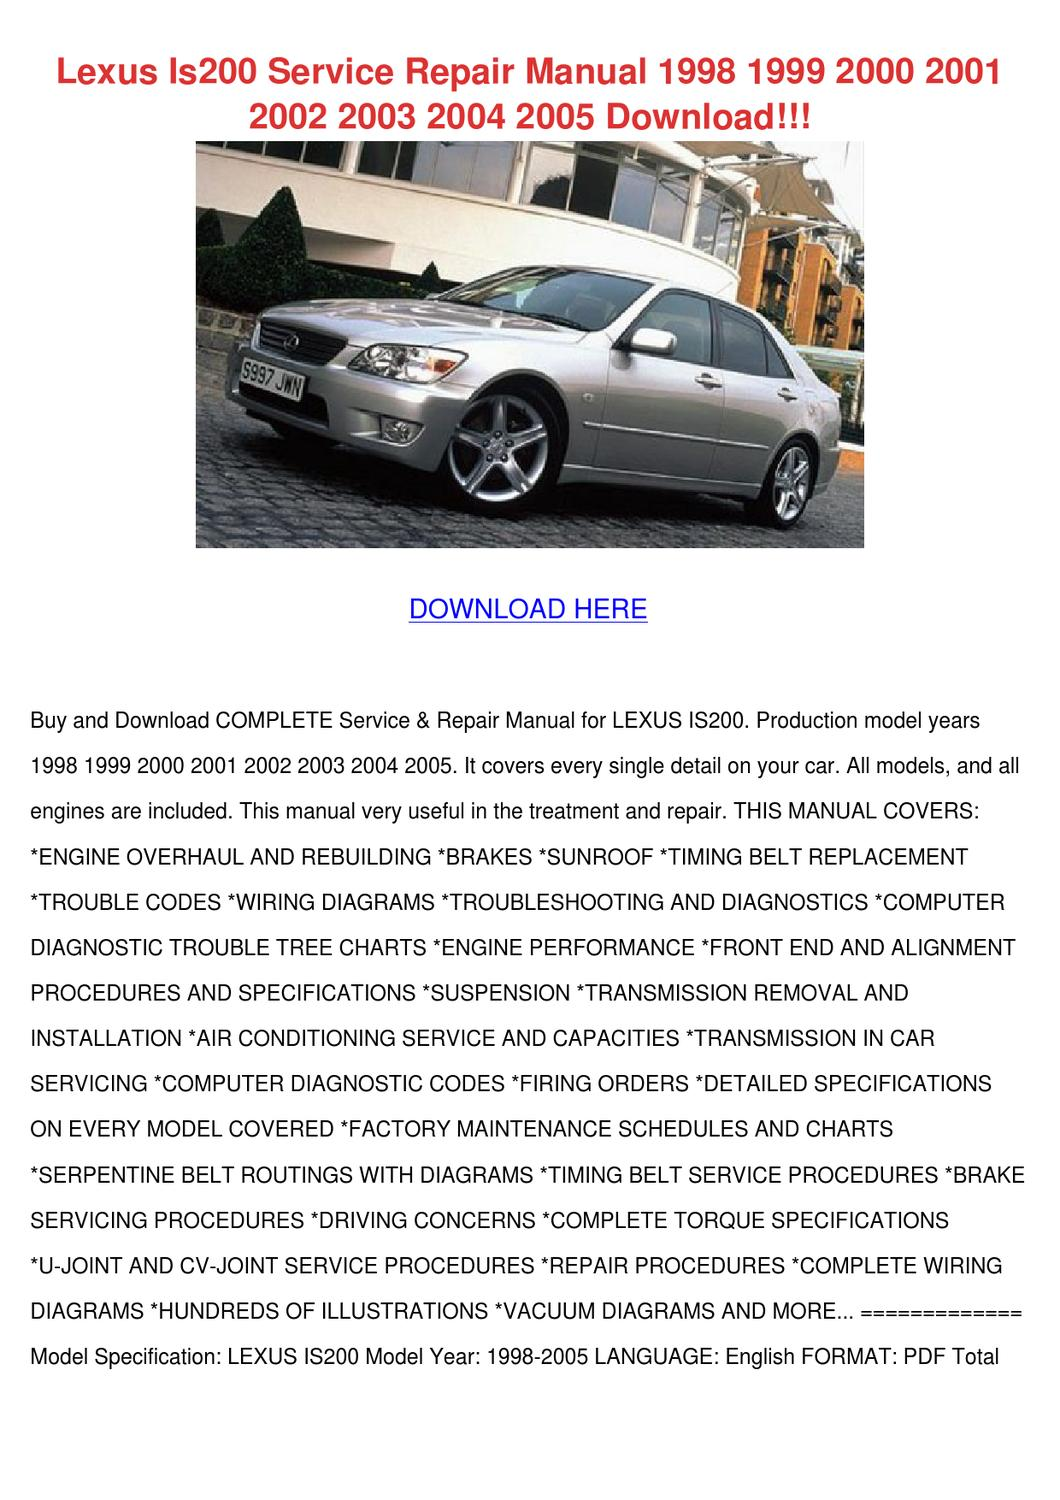 hight resolution of lexus is200 service repair manual 1998 1999 2